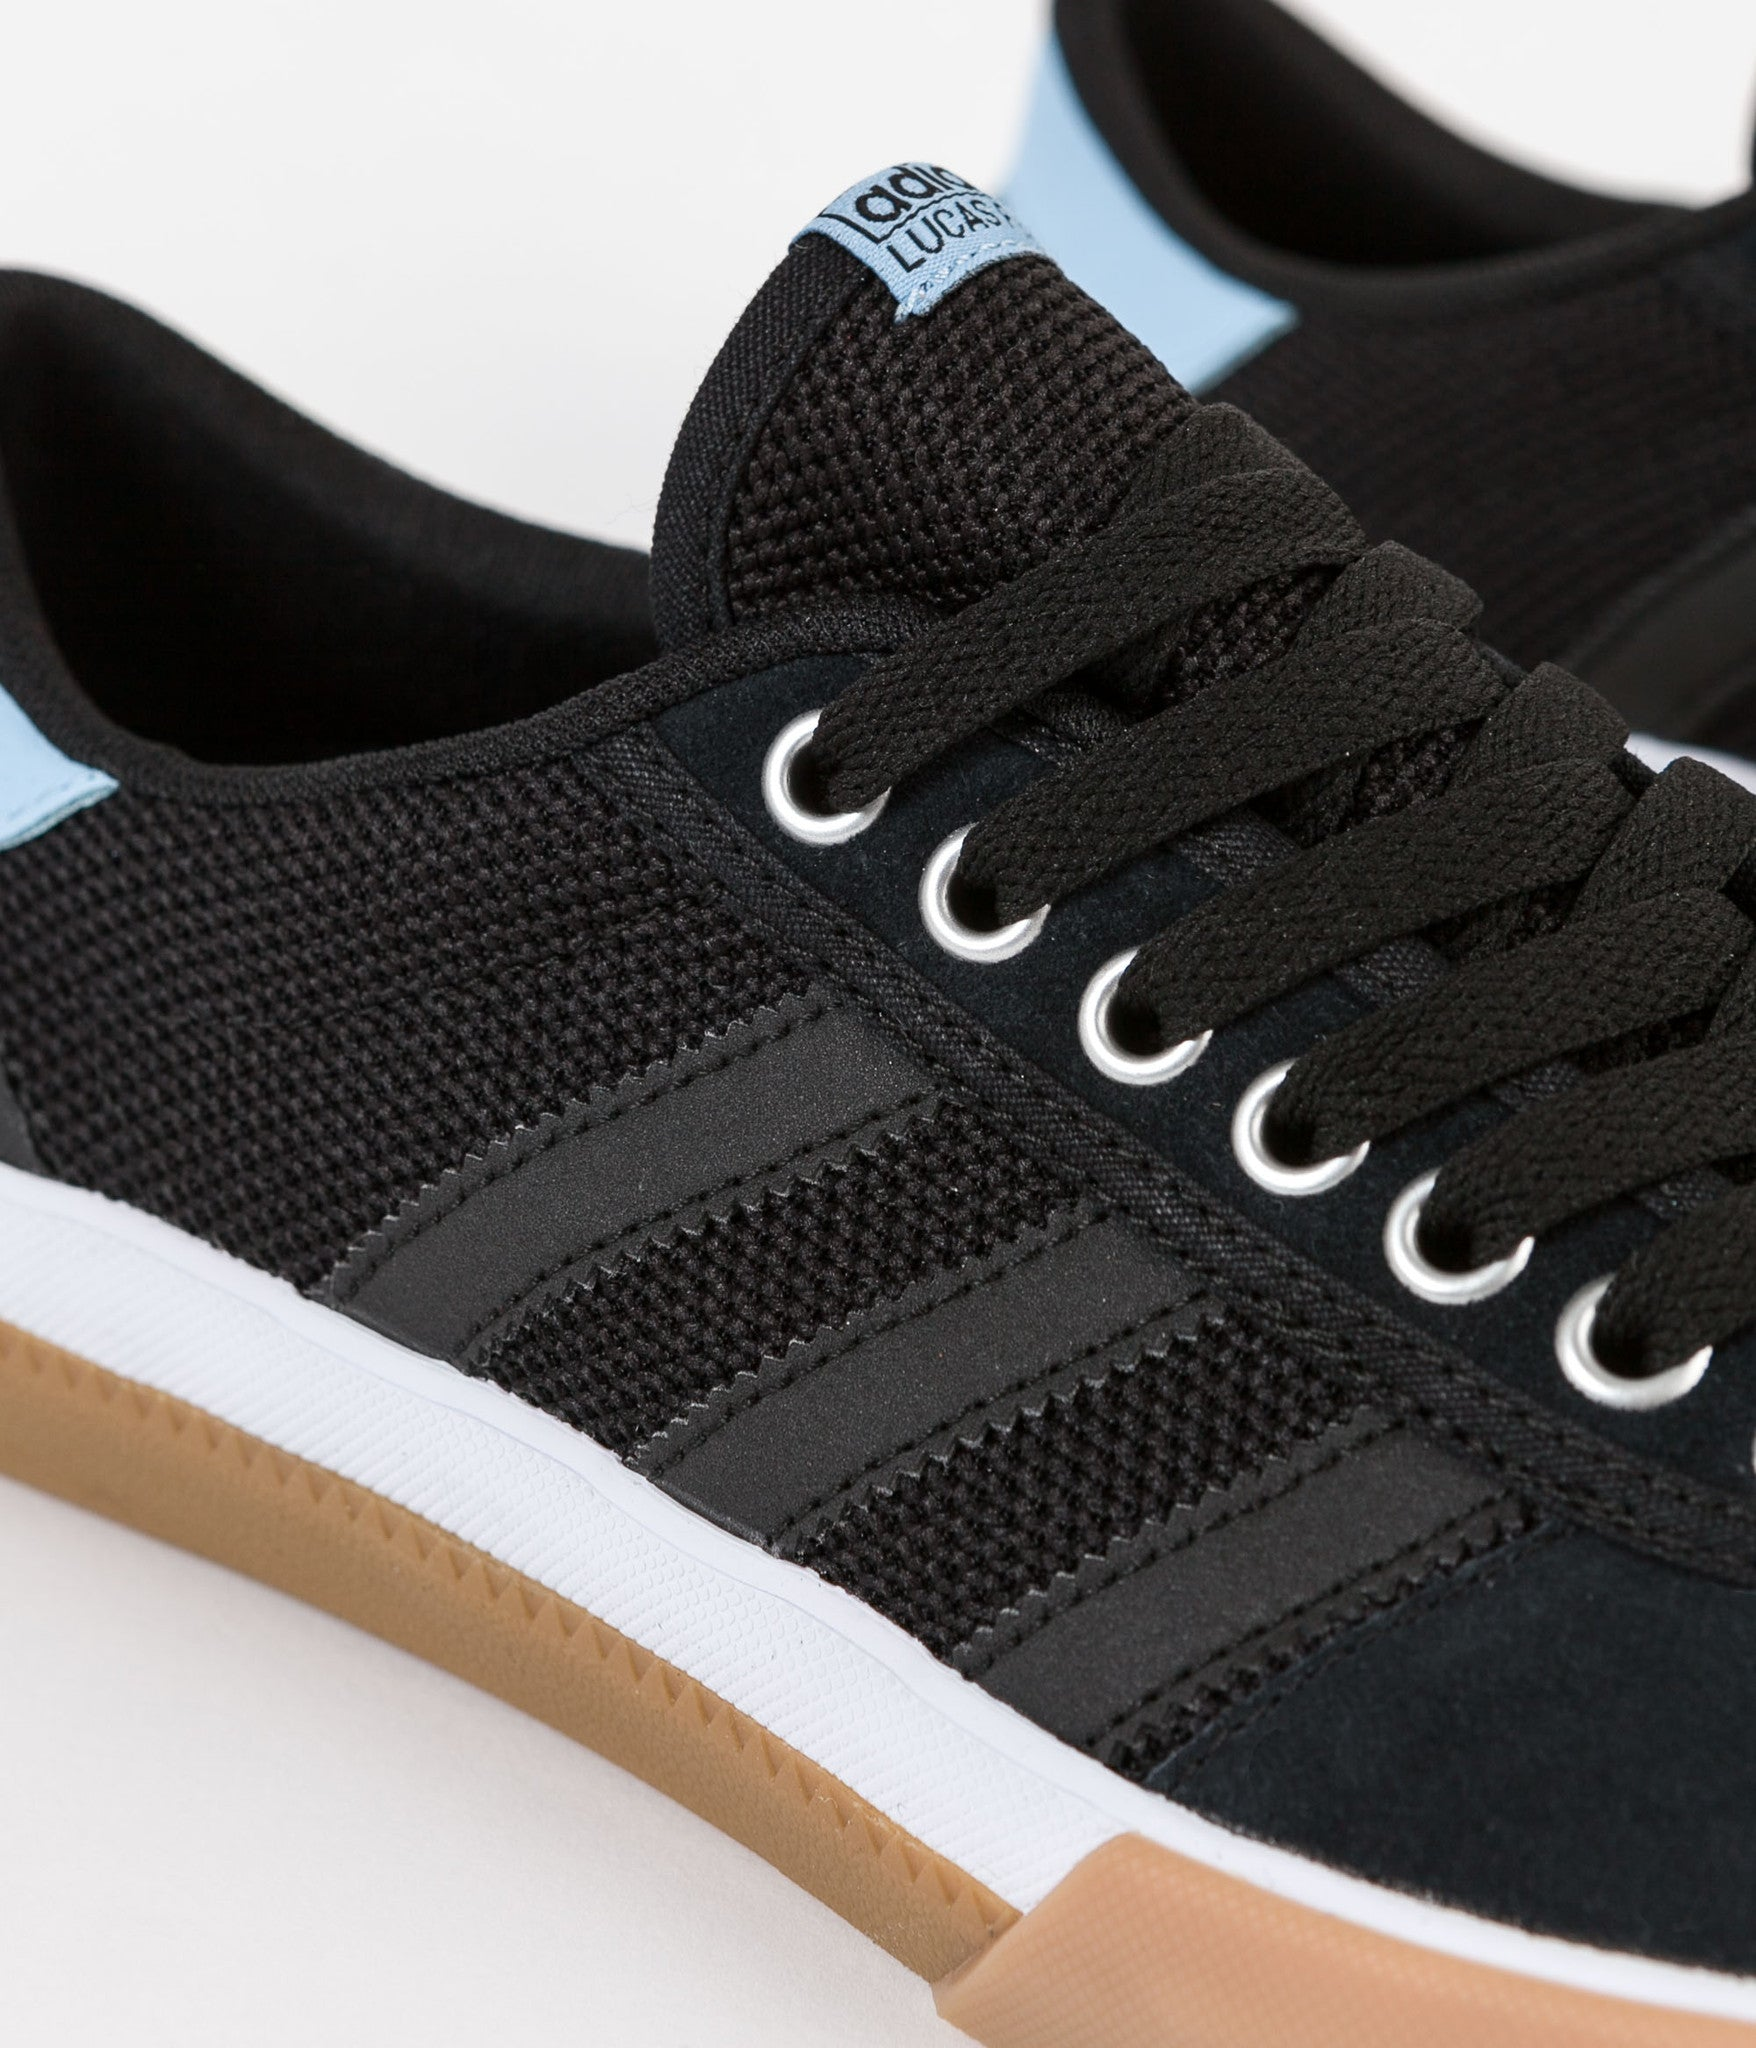 new style dc55f 2e784 ... Adidas Lucas Premiere Adv Shoes - Core Black   Black   Gum ...